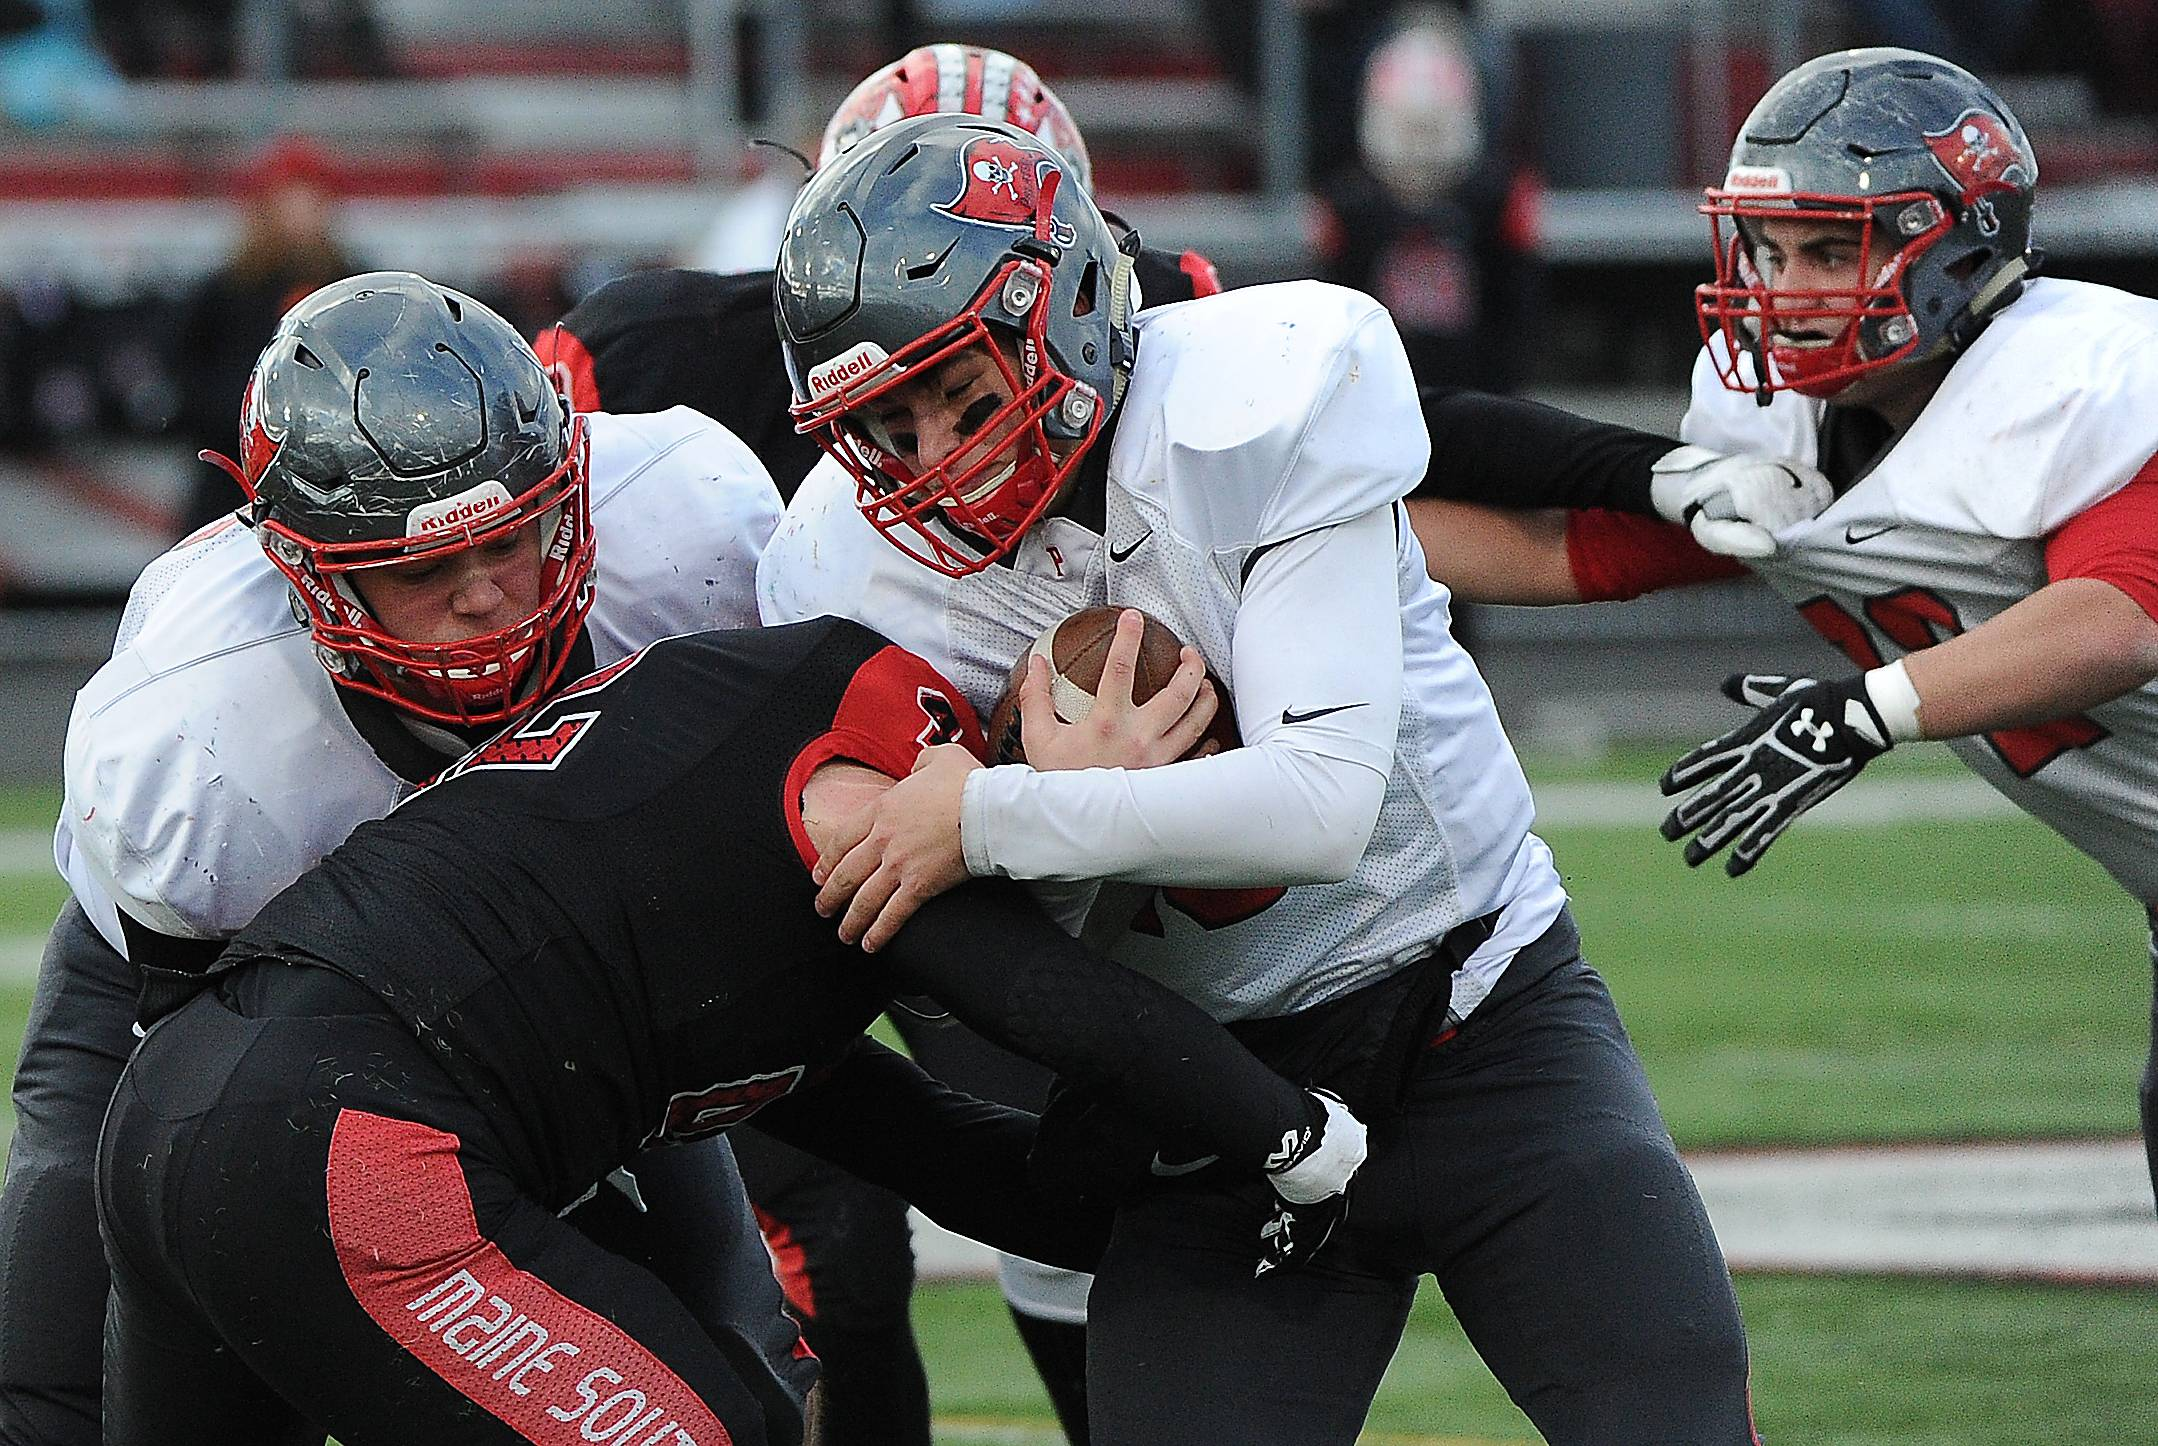 Palatine's quarterback DJ Angelaccio gets jammed up as he runs for yardage in the first half at Maine South.